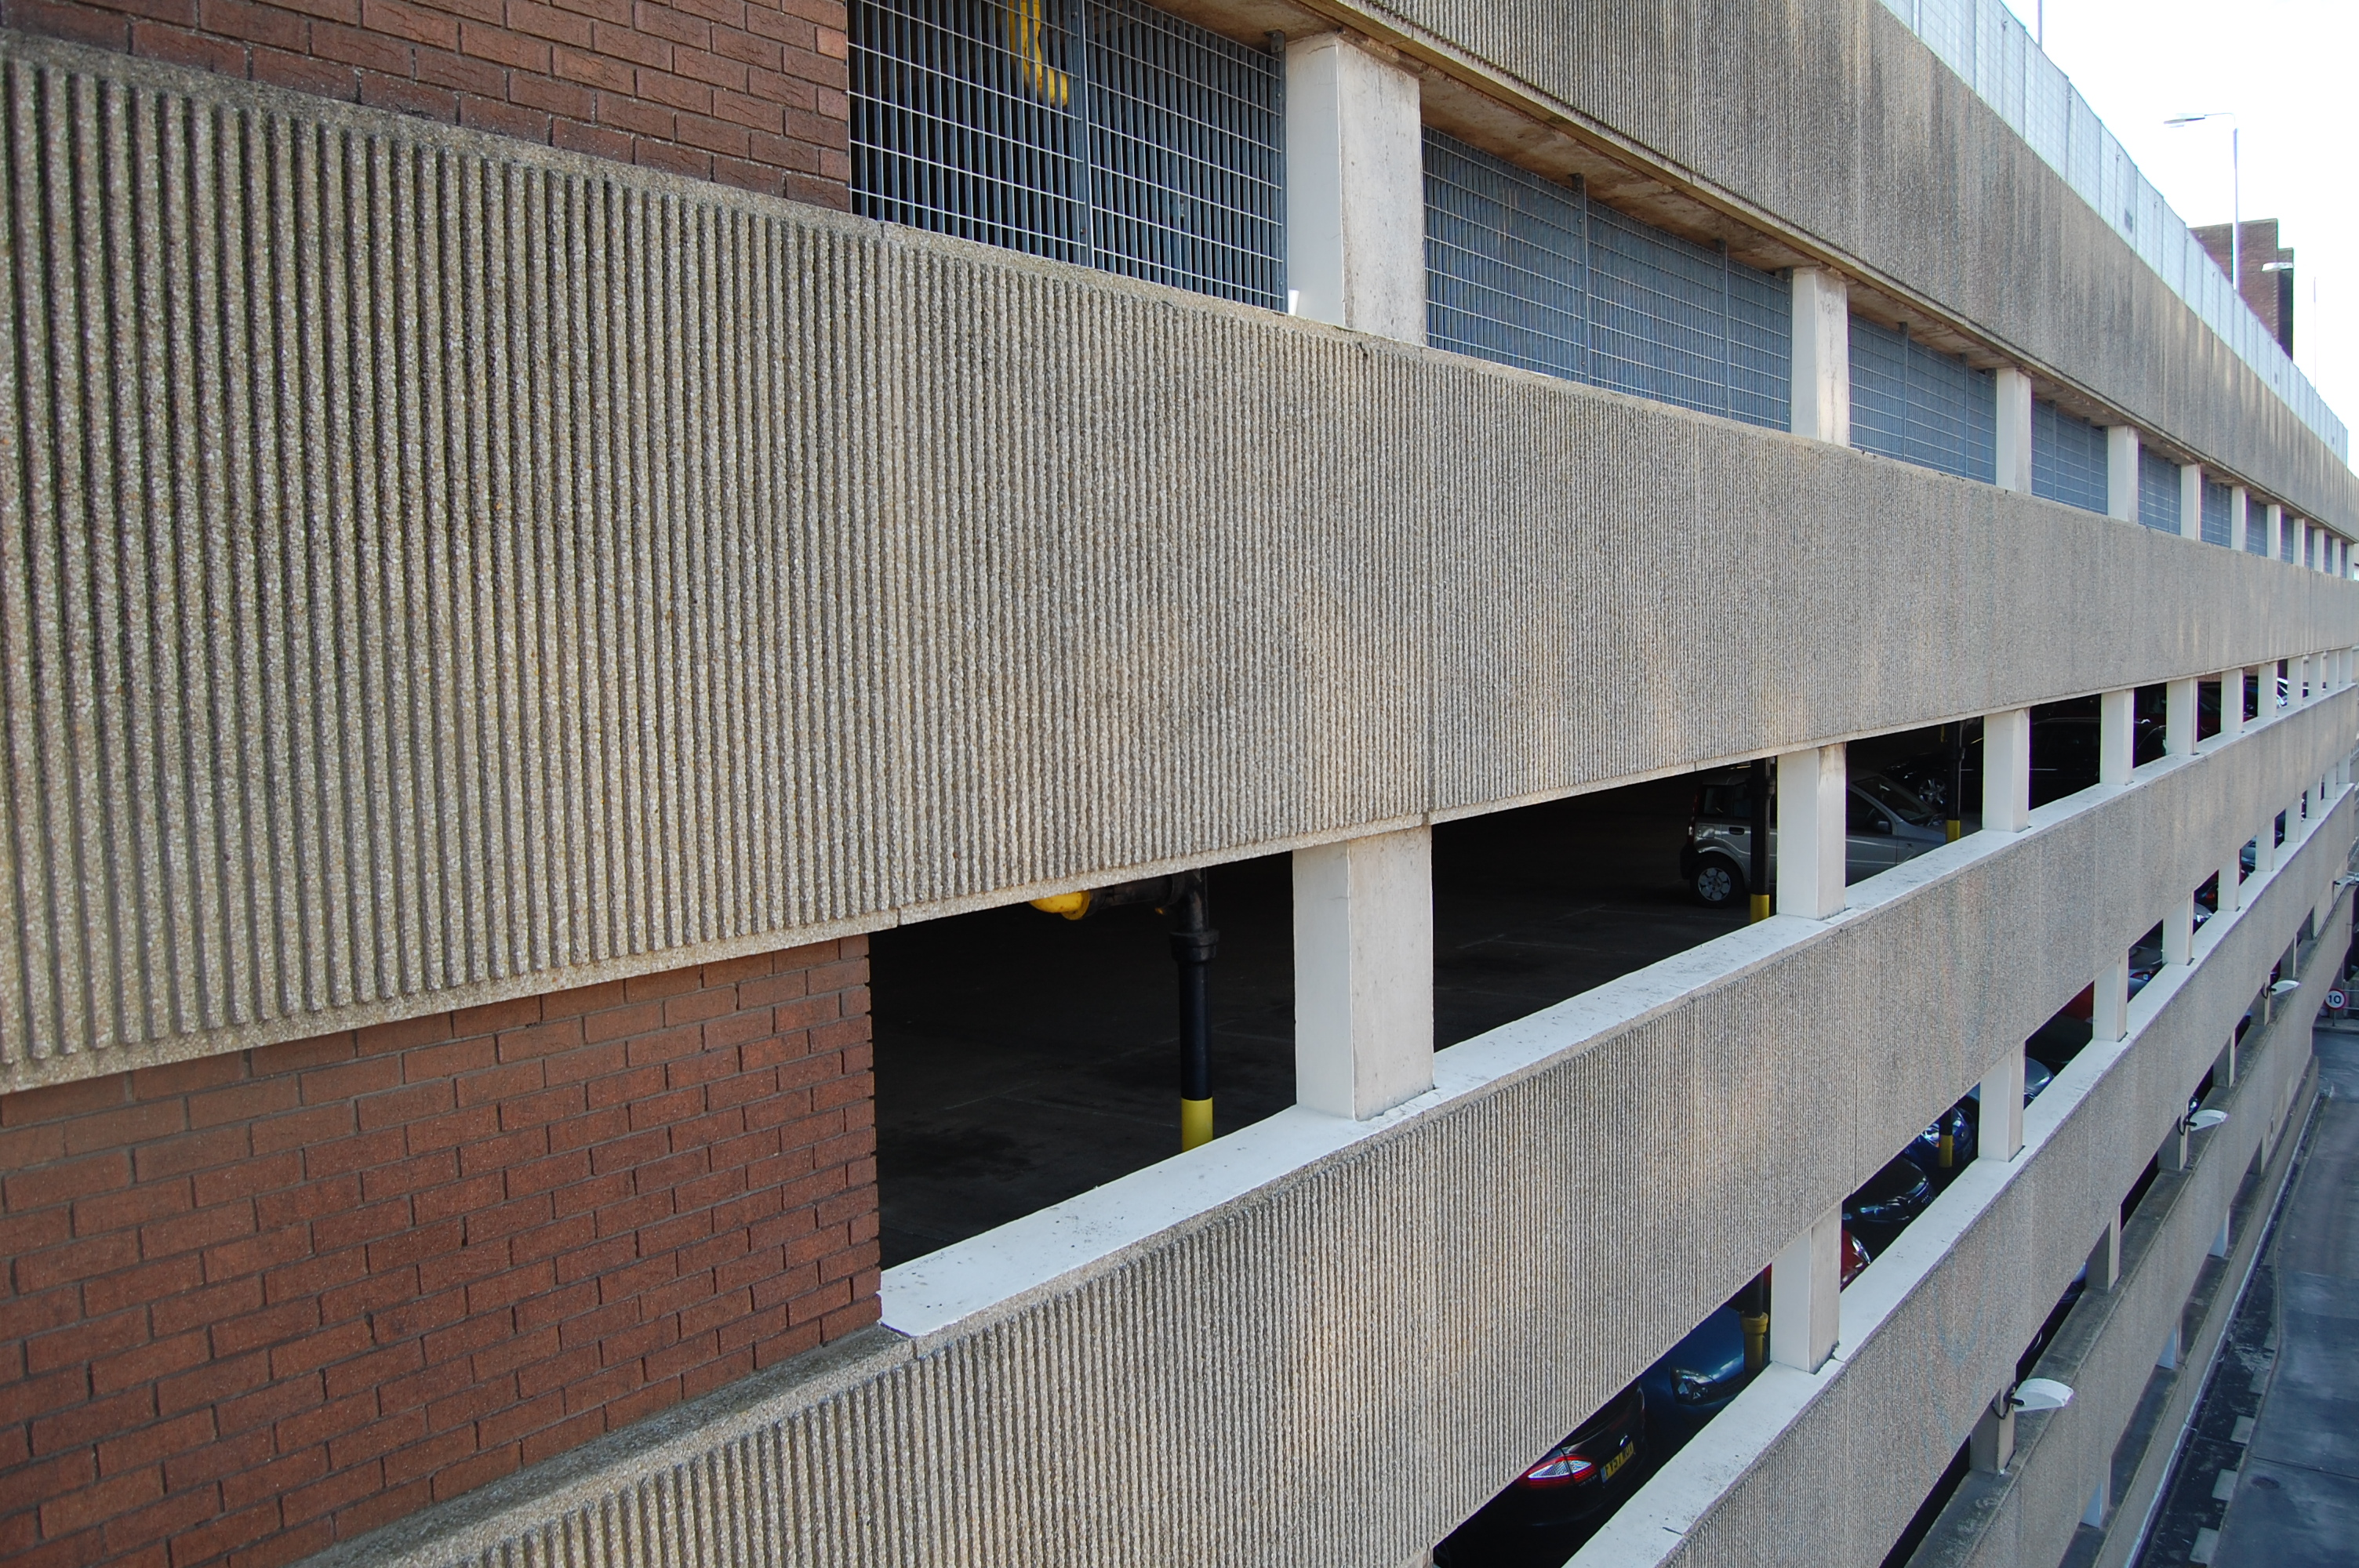 Car park side view. 2012.